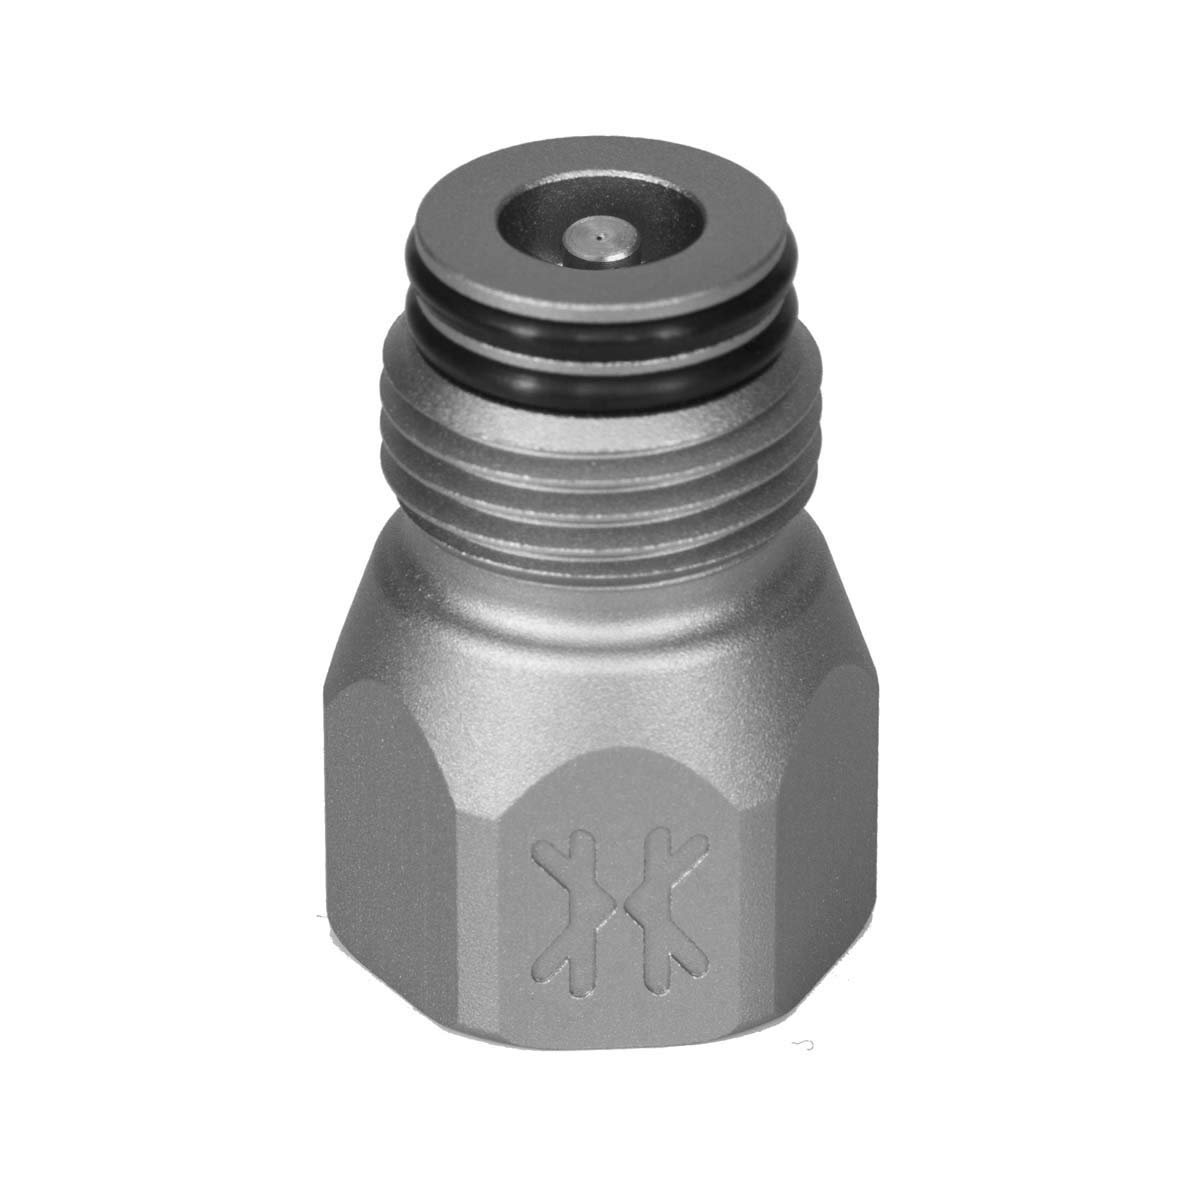 HK Army Paintball Regulator Extender - Silver by HK Army